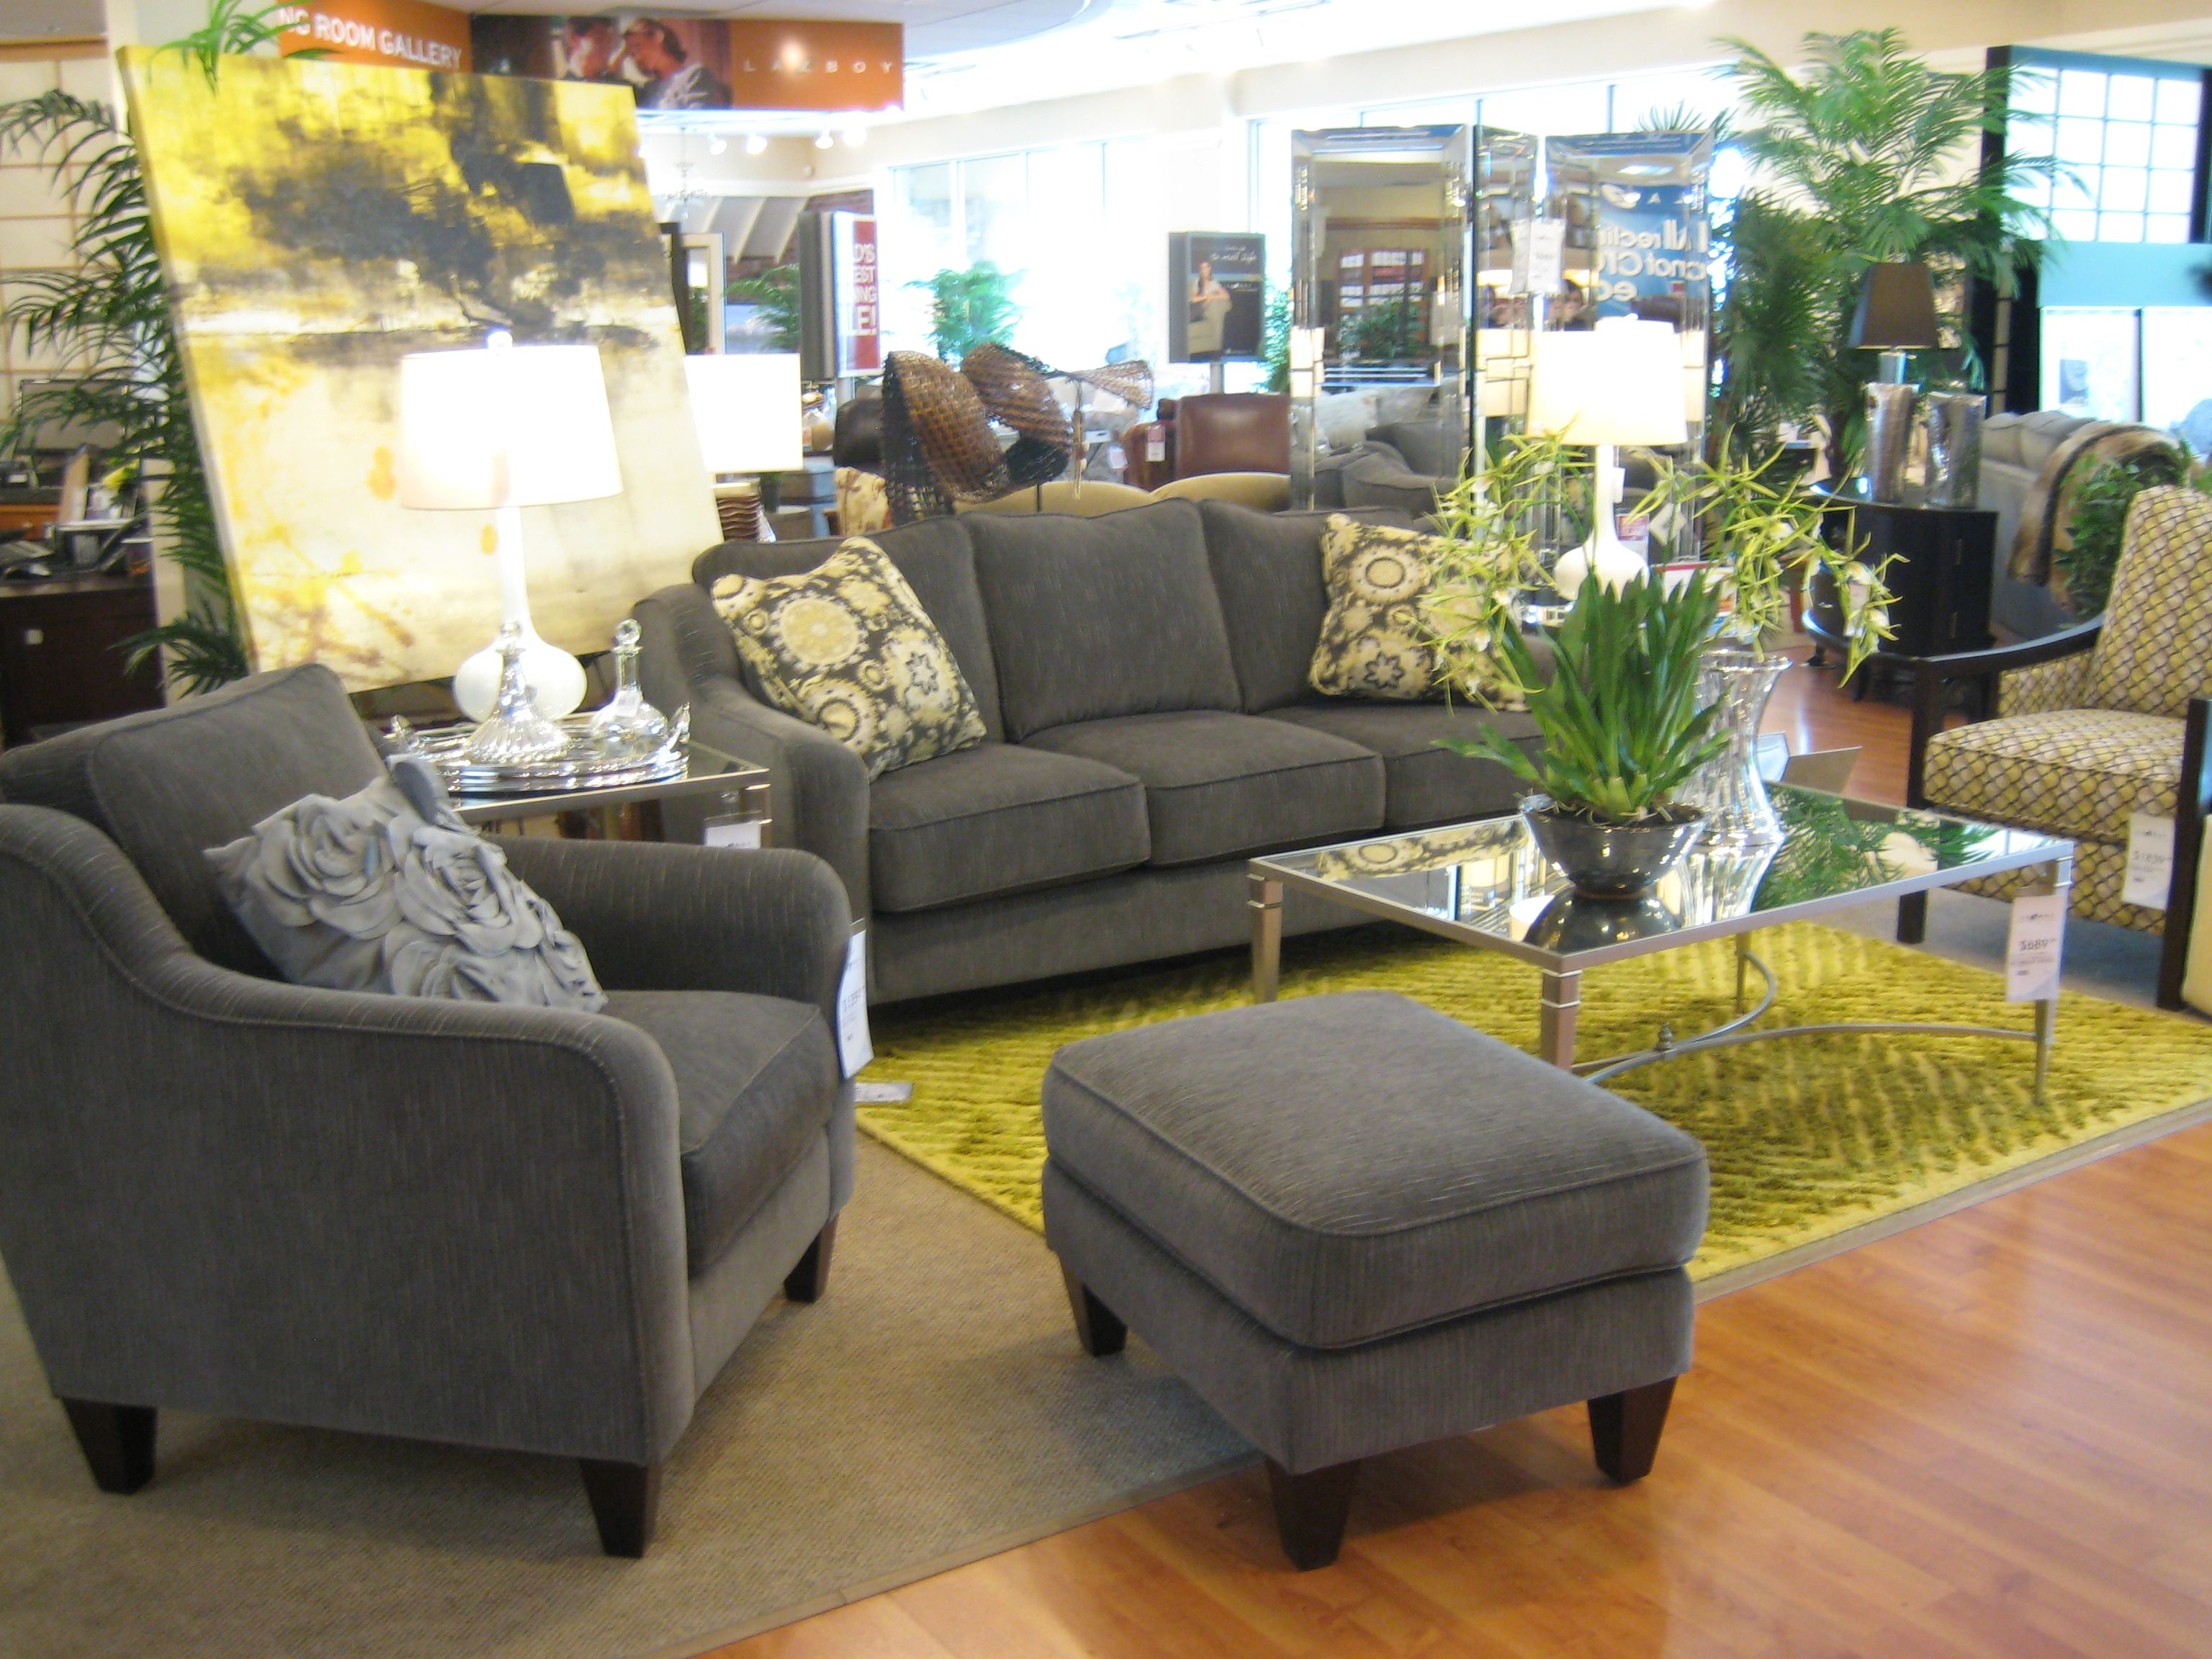 Talbot Sofa And Chair With A Sam Moore Accent Look How